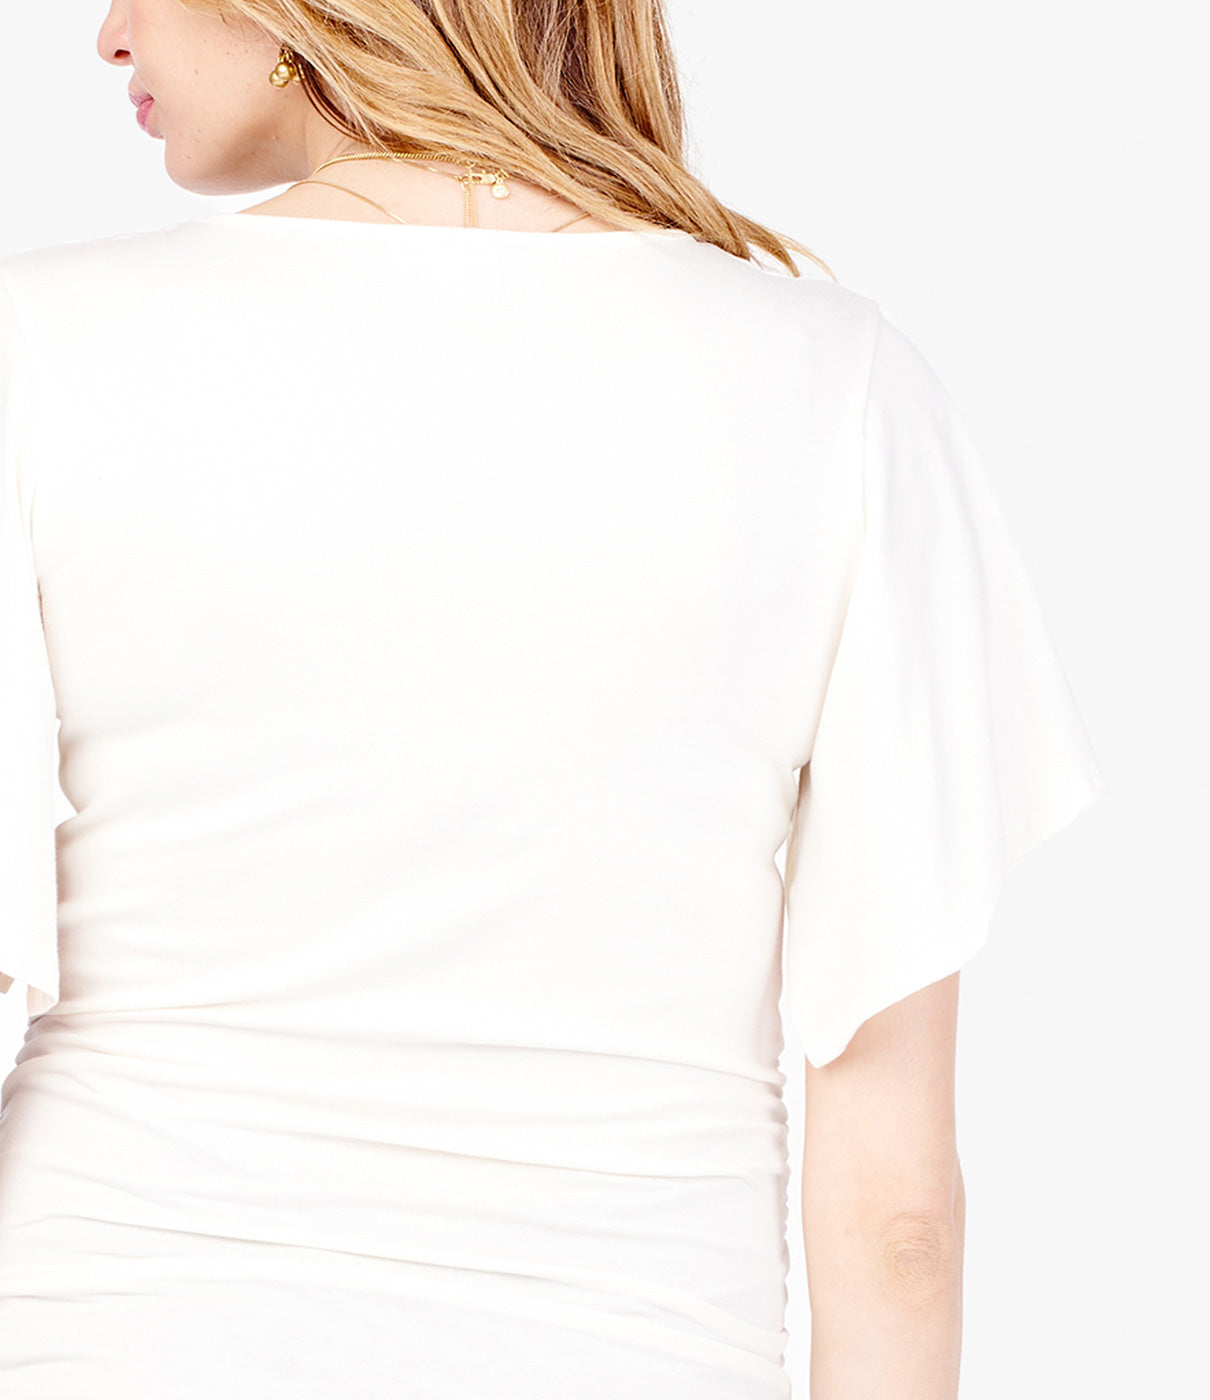 What It's Made Of Soft and drapey cotton blend fabric for maximum comfort.